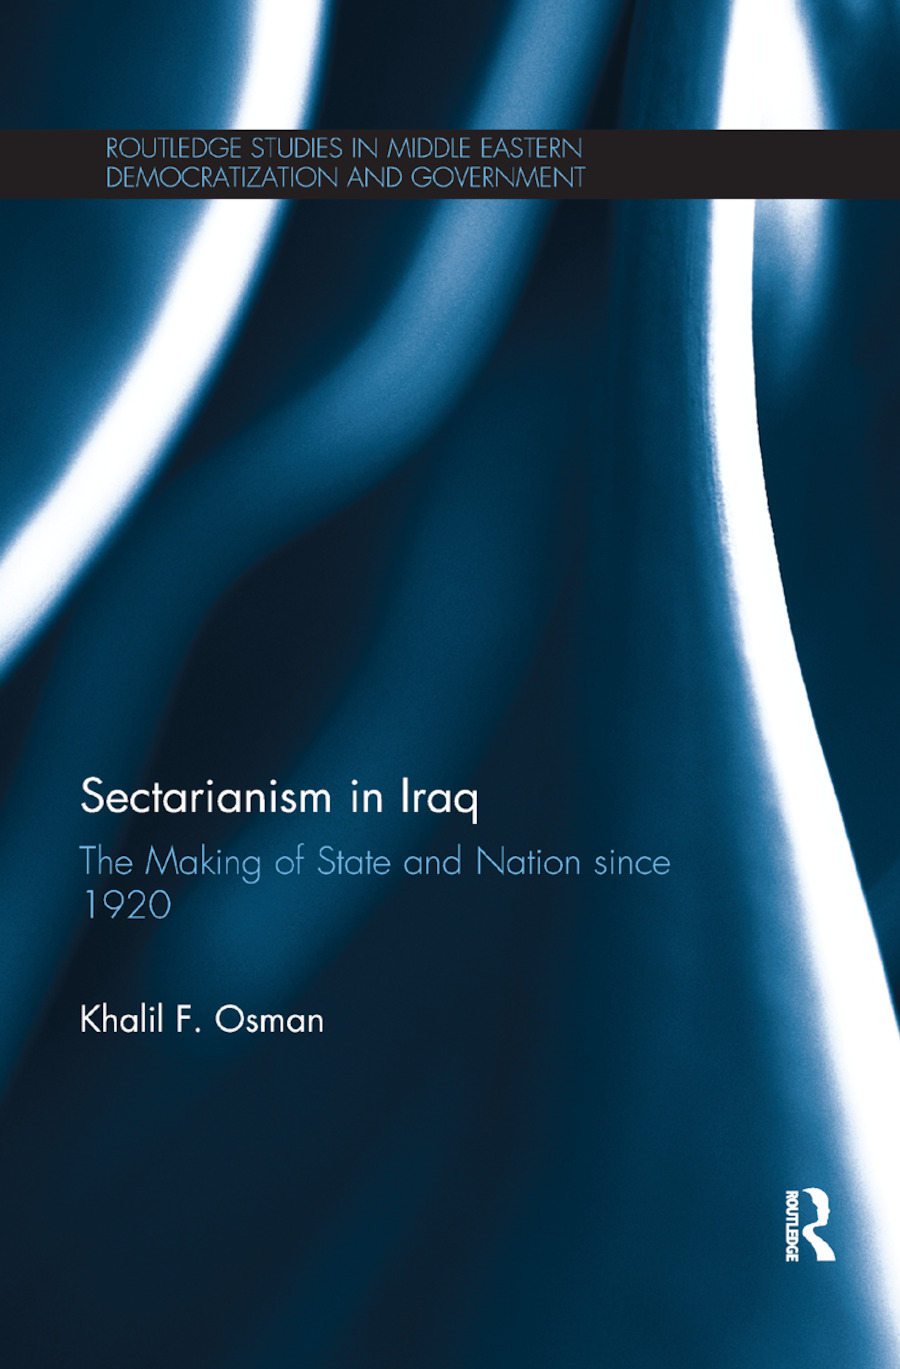 Sectarianism in Iraq: The Making of State and Nation Since 1920 book cover